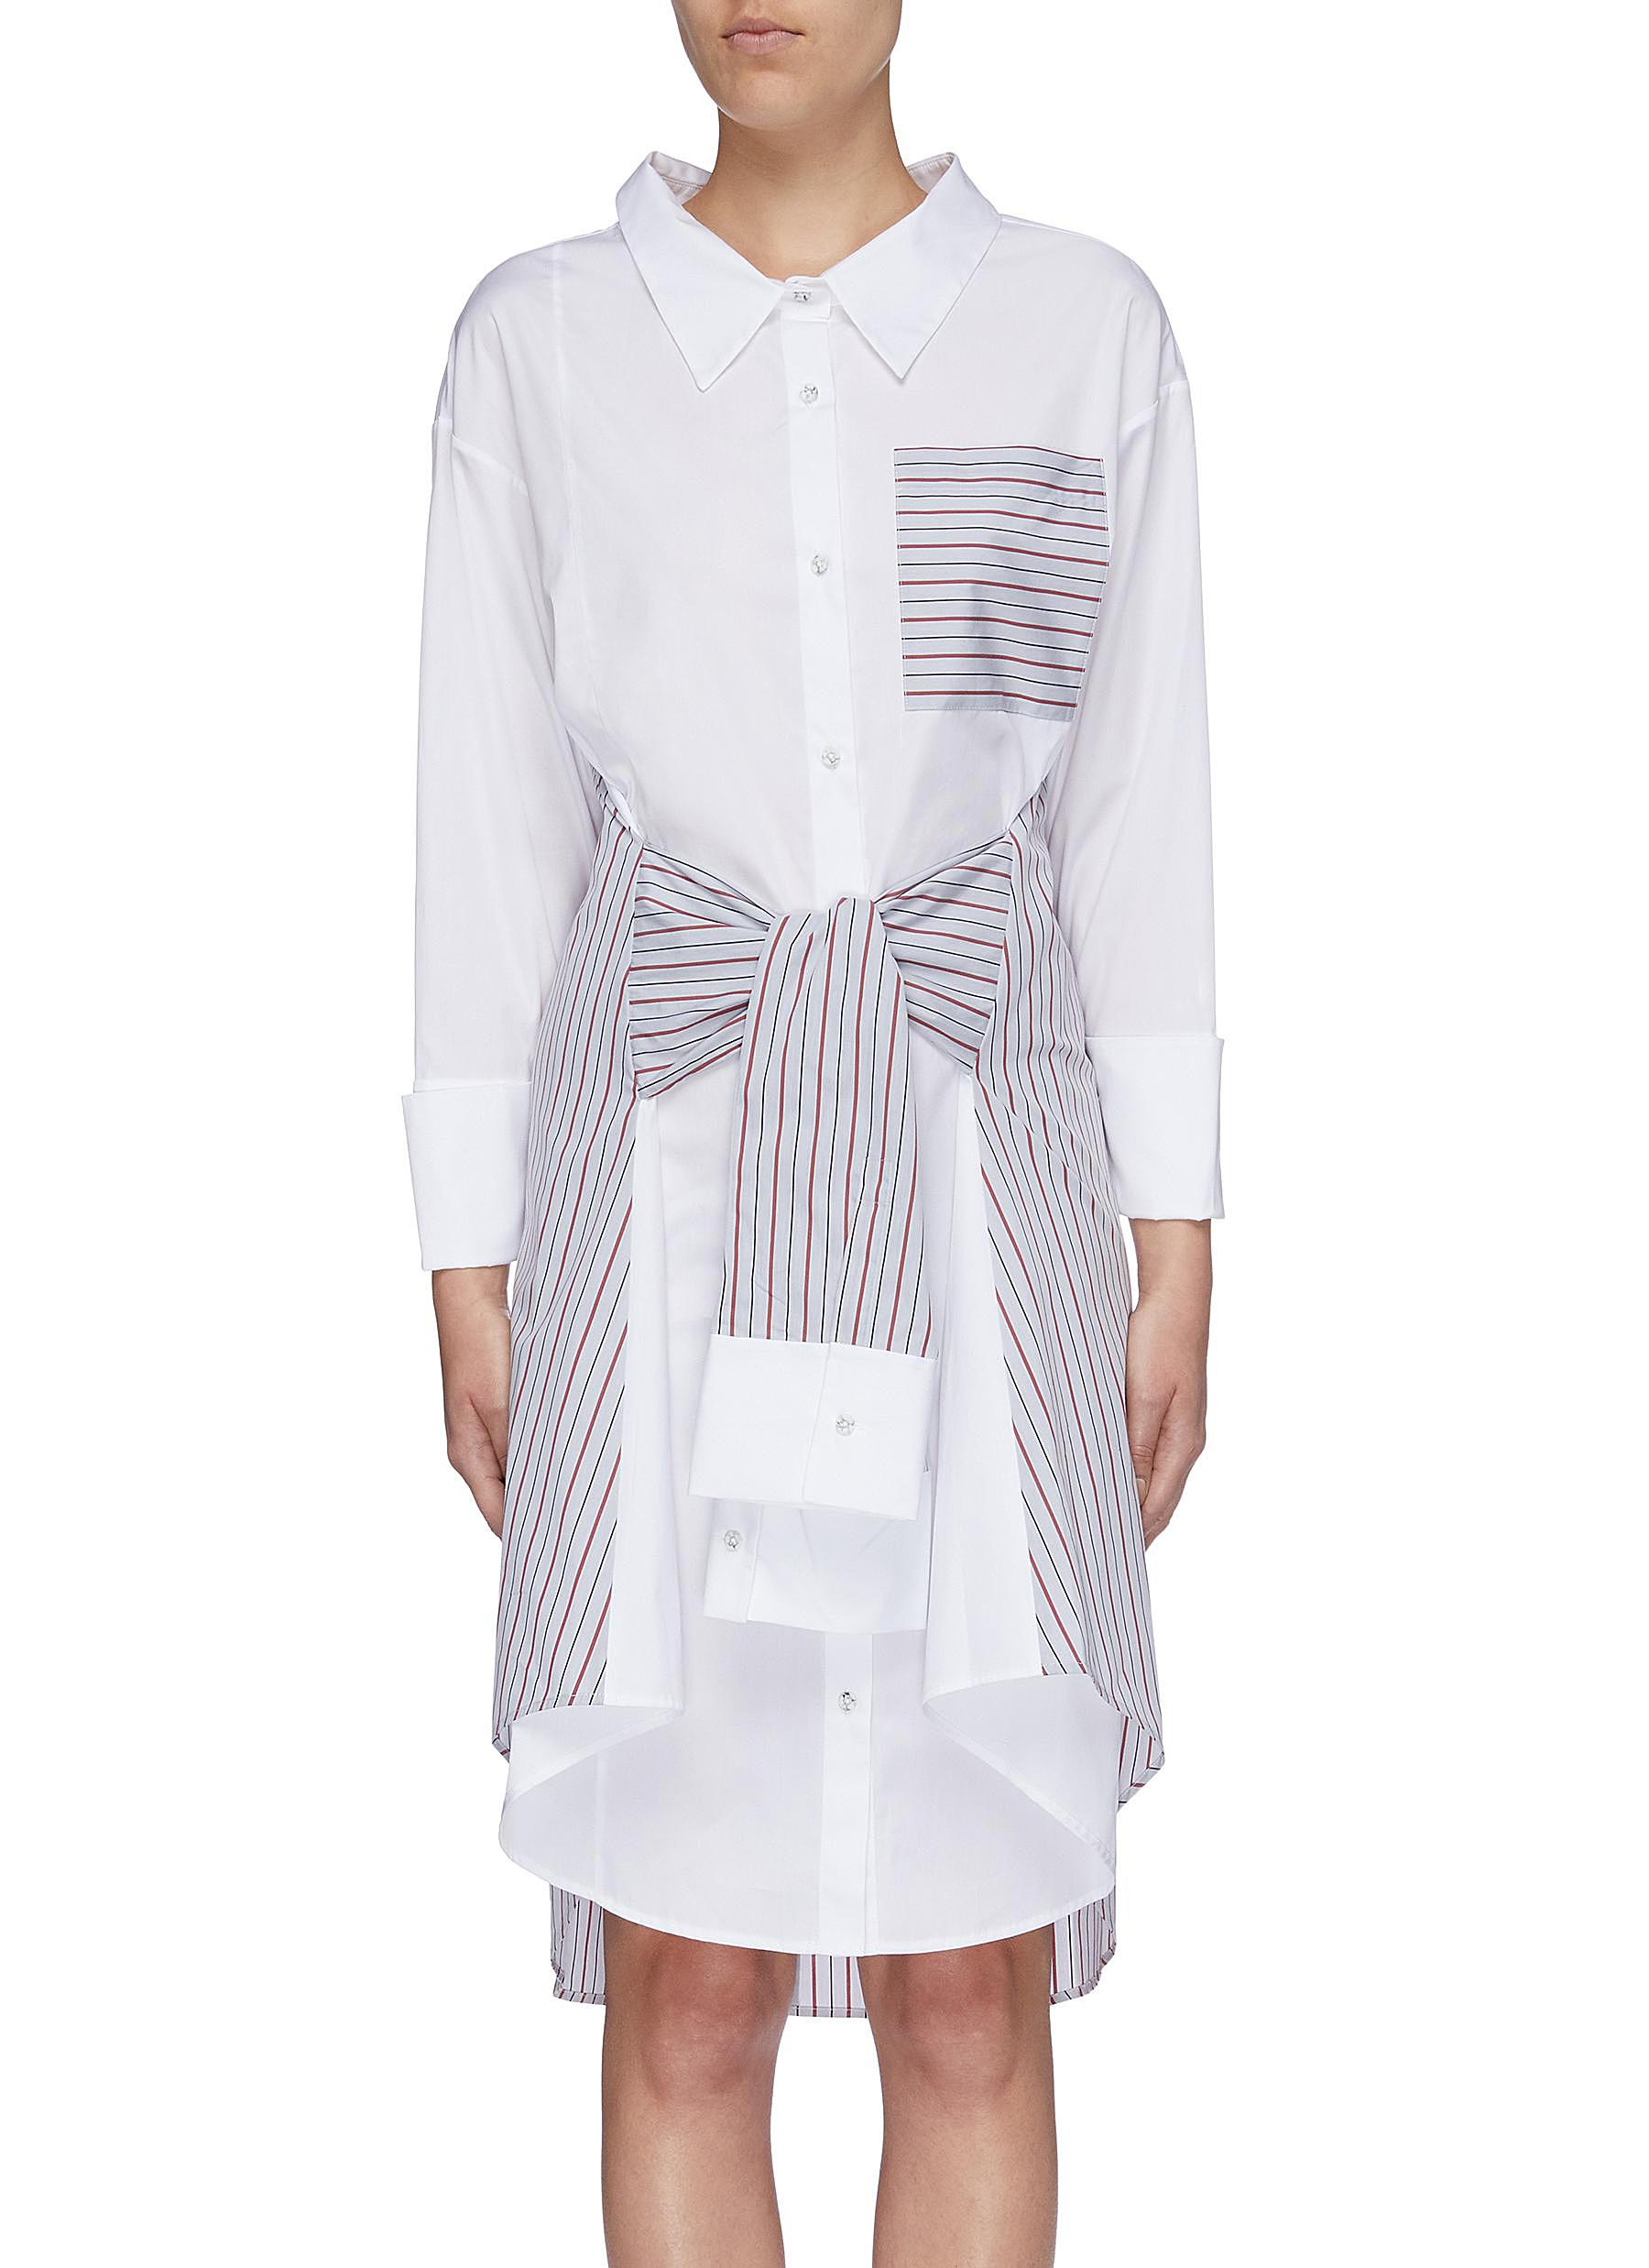 Sleeve tie colourblock stripe panel shirt dress by Portspure